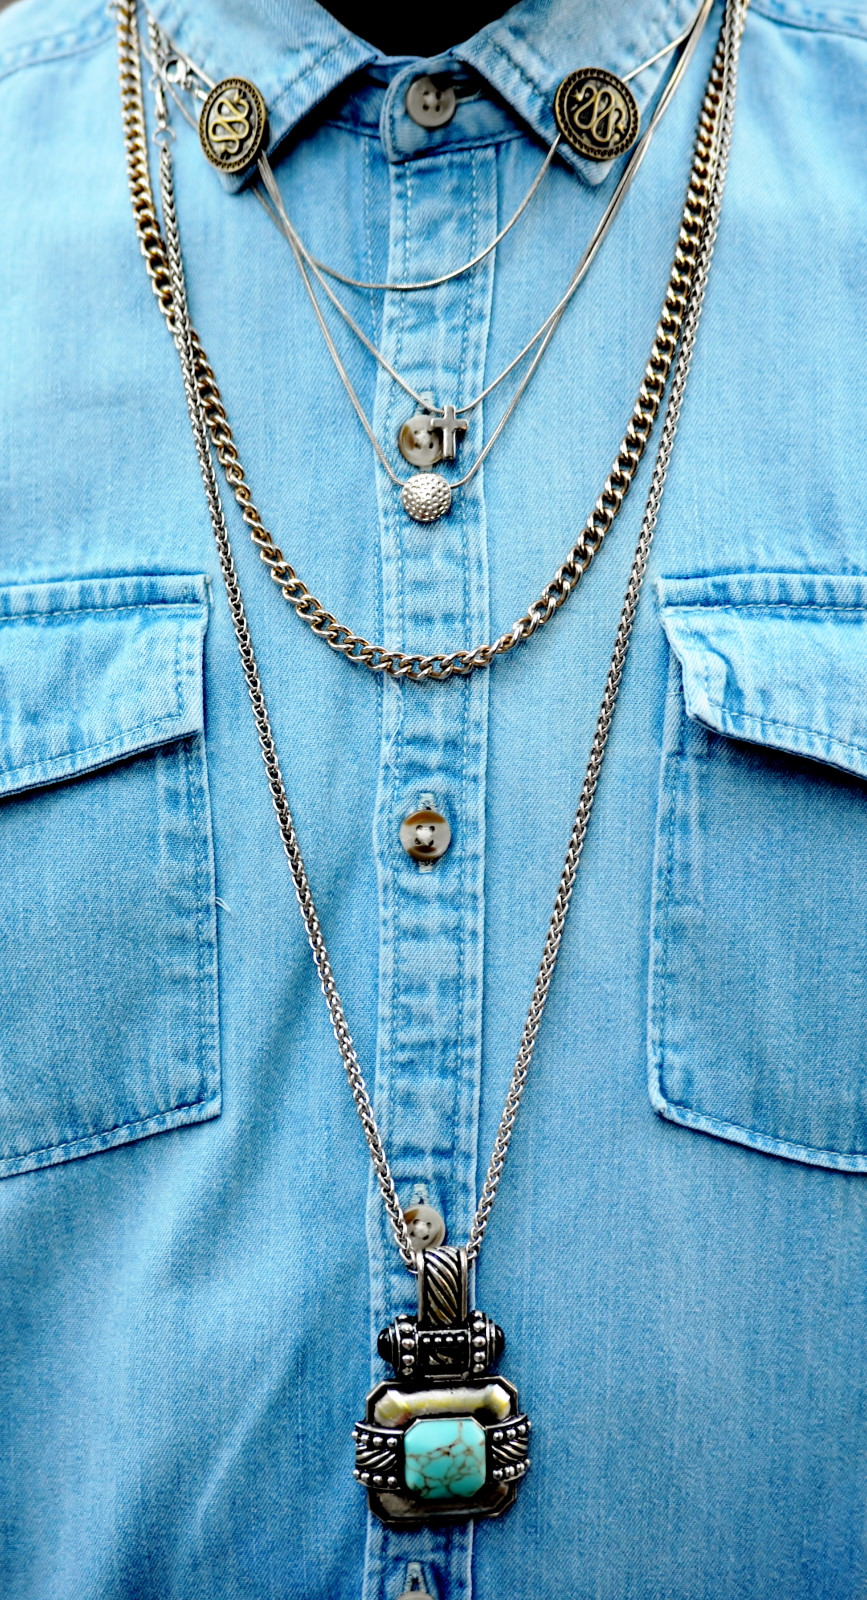 Necklaces : All Topman